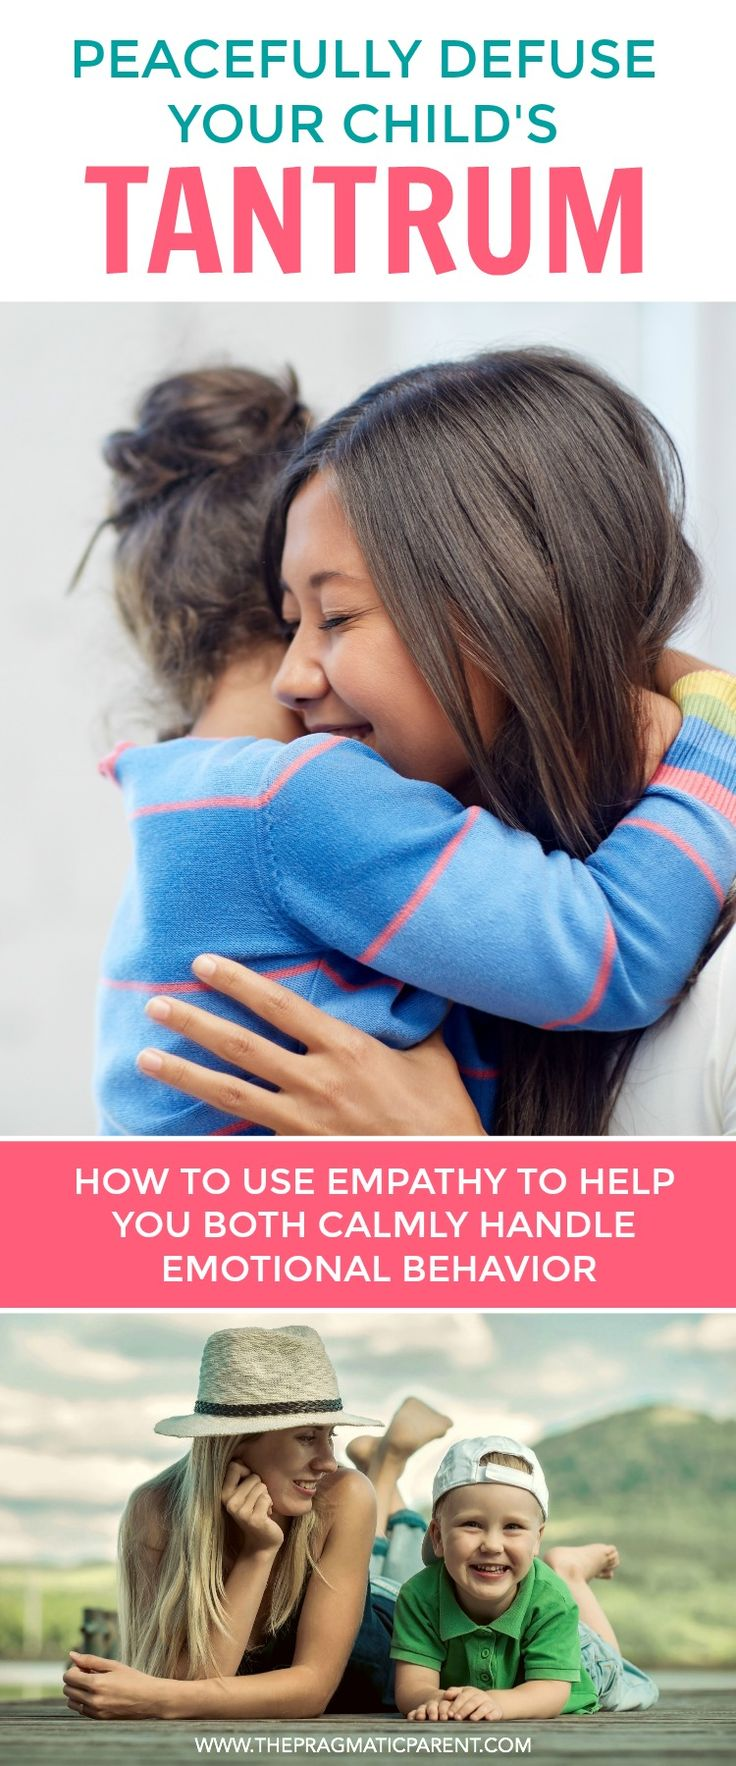 How to peacefully defuse your child's tantrum using empathy and teaching about emotions in the process. Stop tantrums by helping your child learn about emotions, name feelings, give back power and calmly handle emotional behavior. via @https://www.pinterest.com/PragmaticParent/